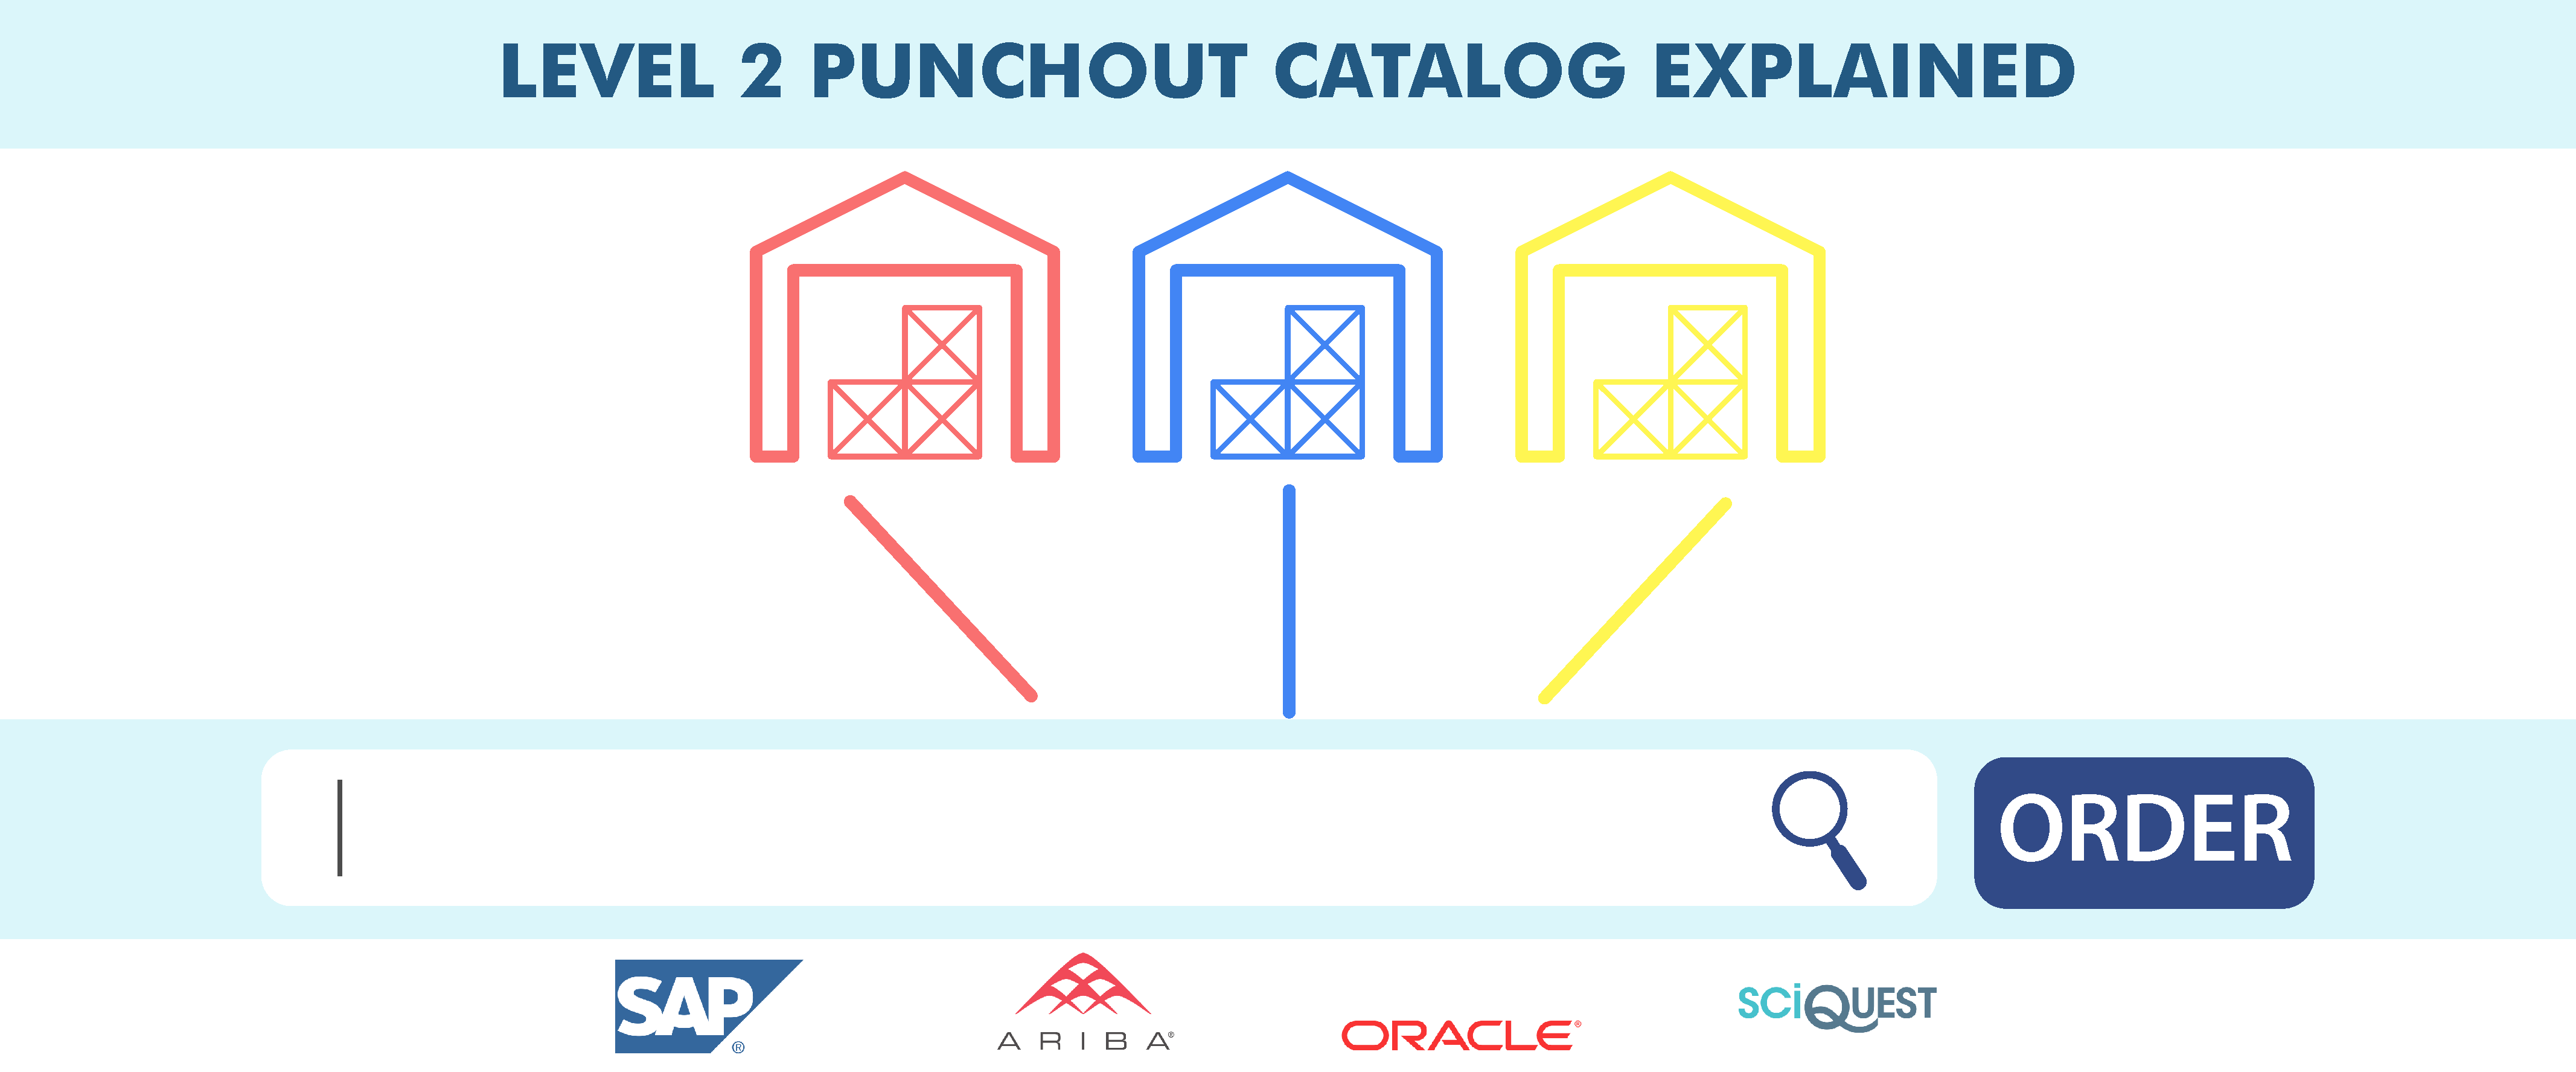 Level 2 PunchOut Catalog? Definition, Meaning and Creation